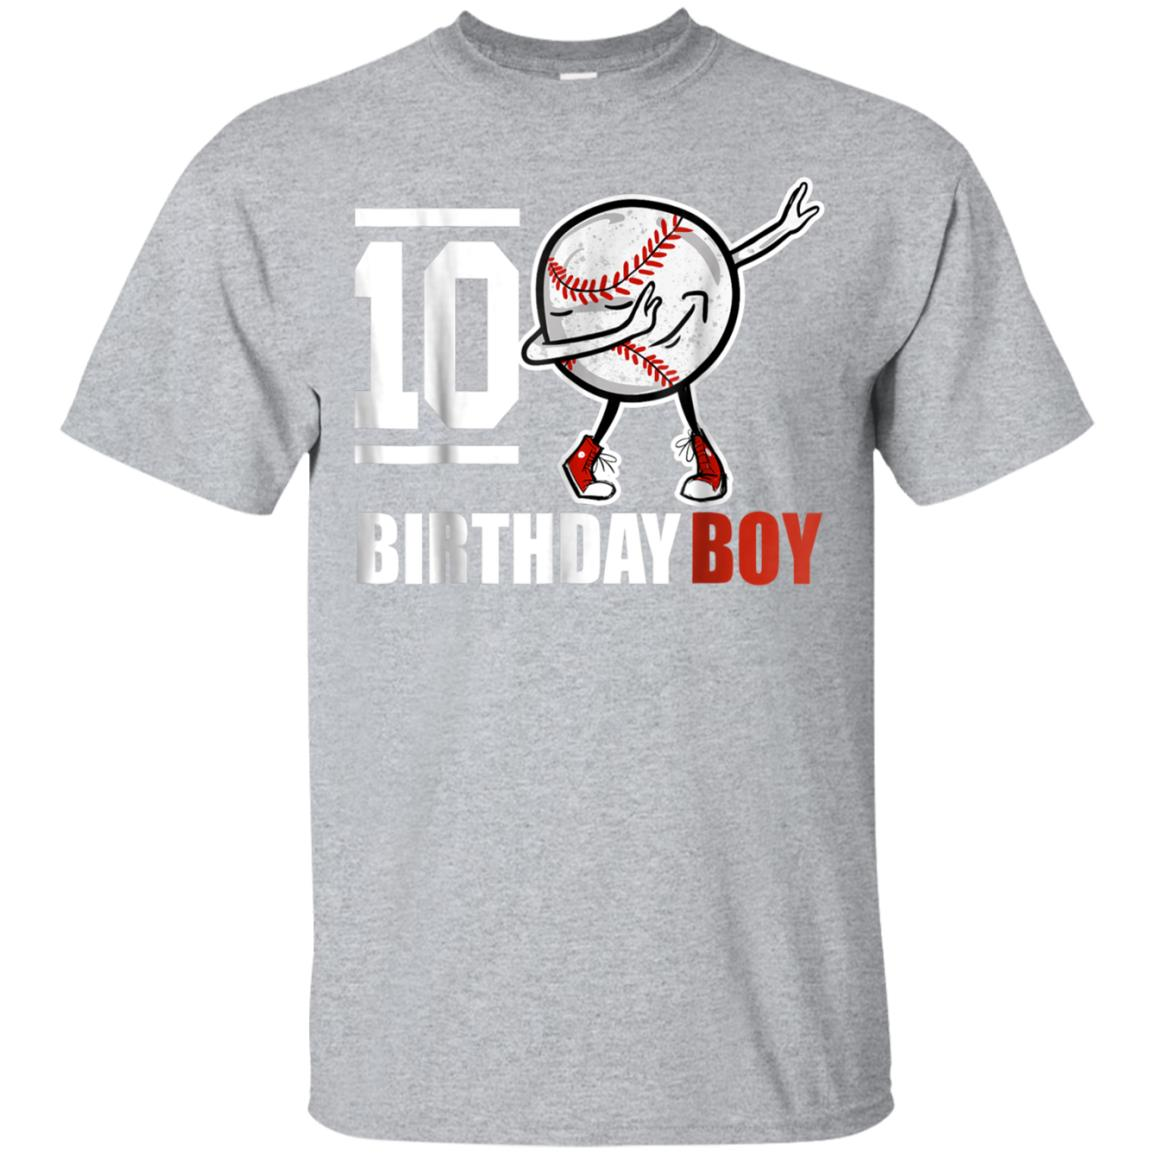 10 Year Old Birthday dabbing Baseball T-Shirt 10th Boy Gift 99promocode